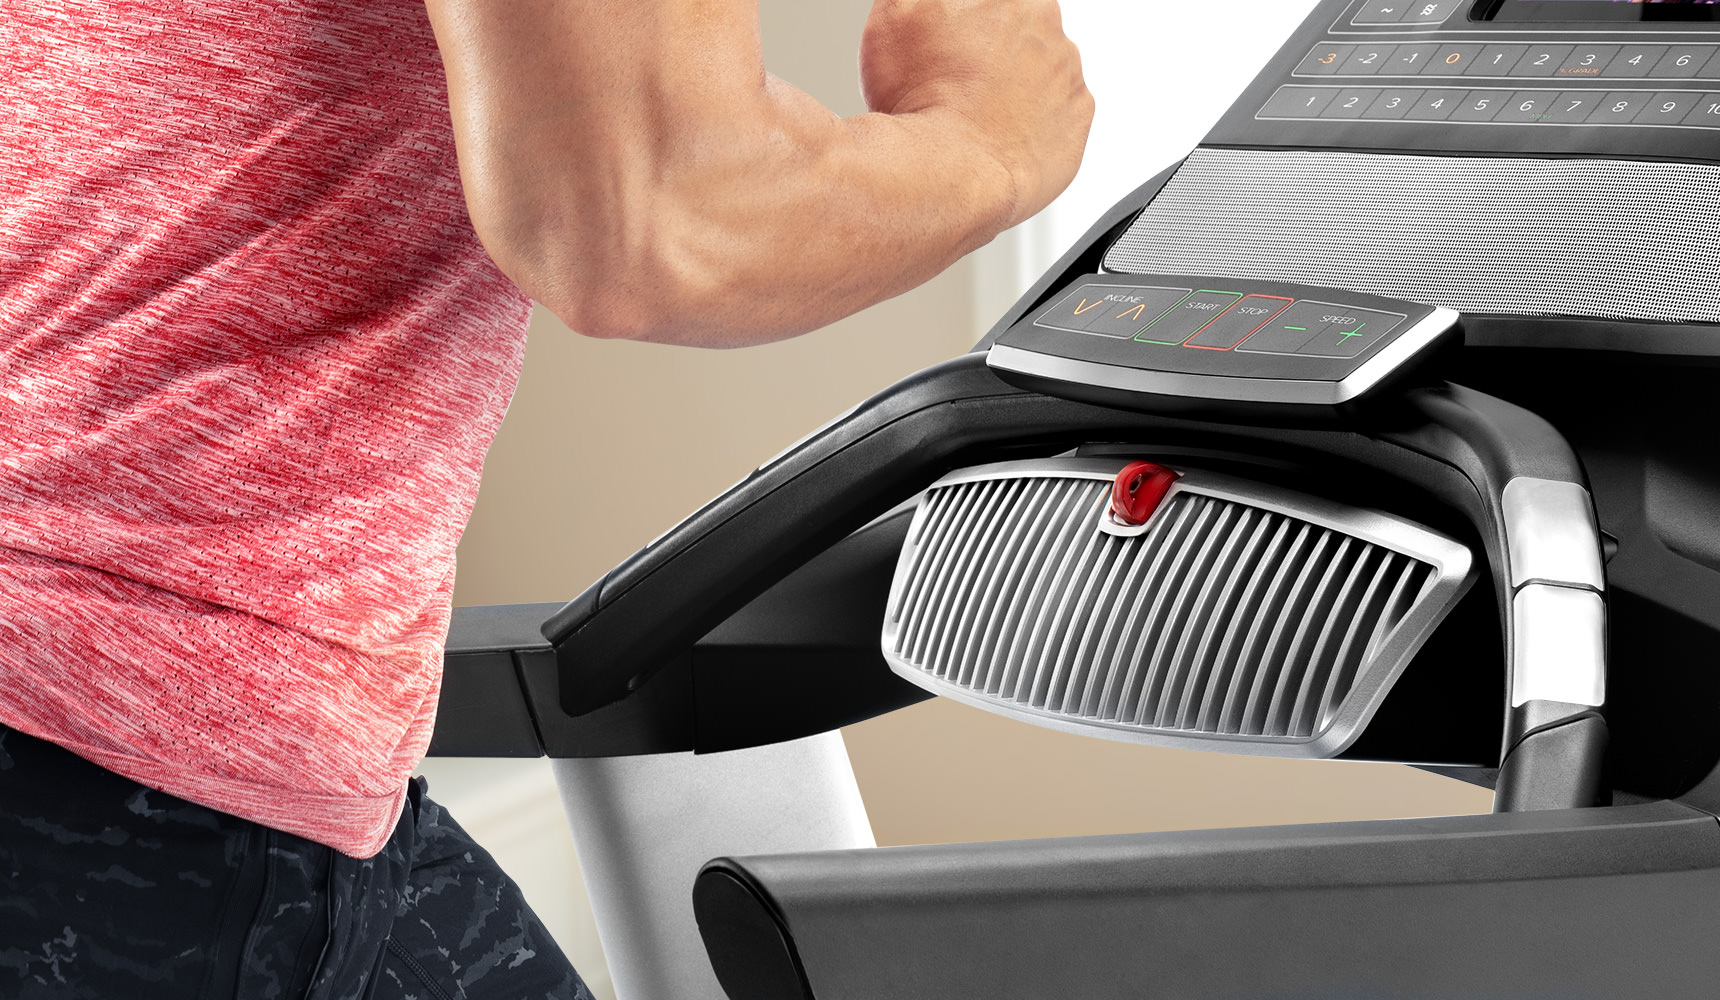 image of the fan on the console of the treadmill